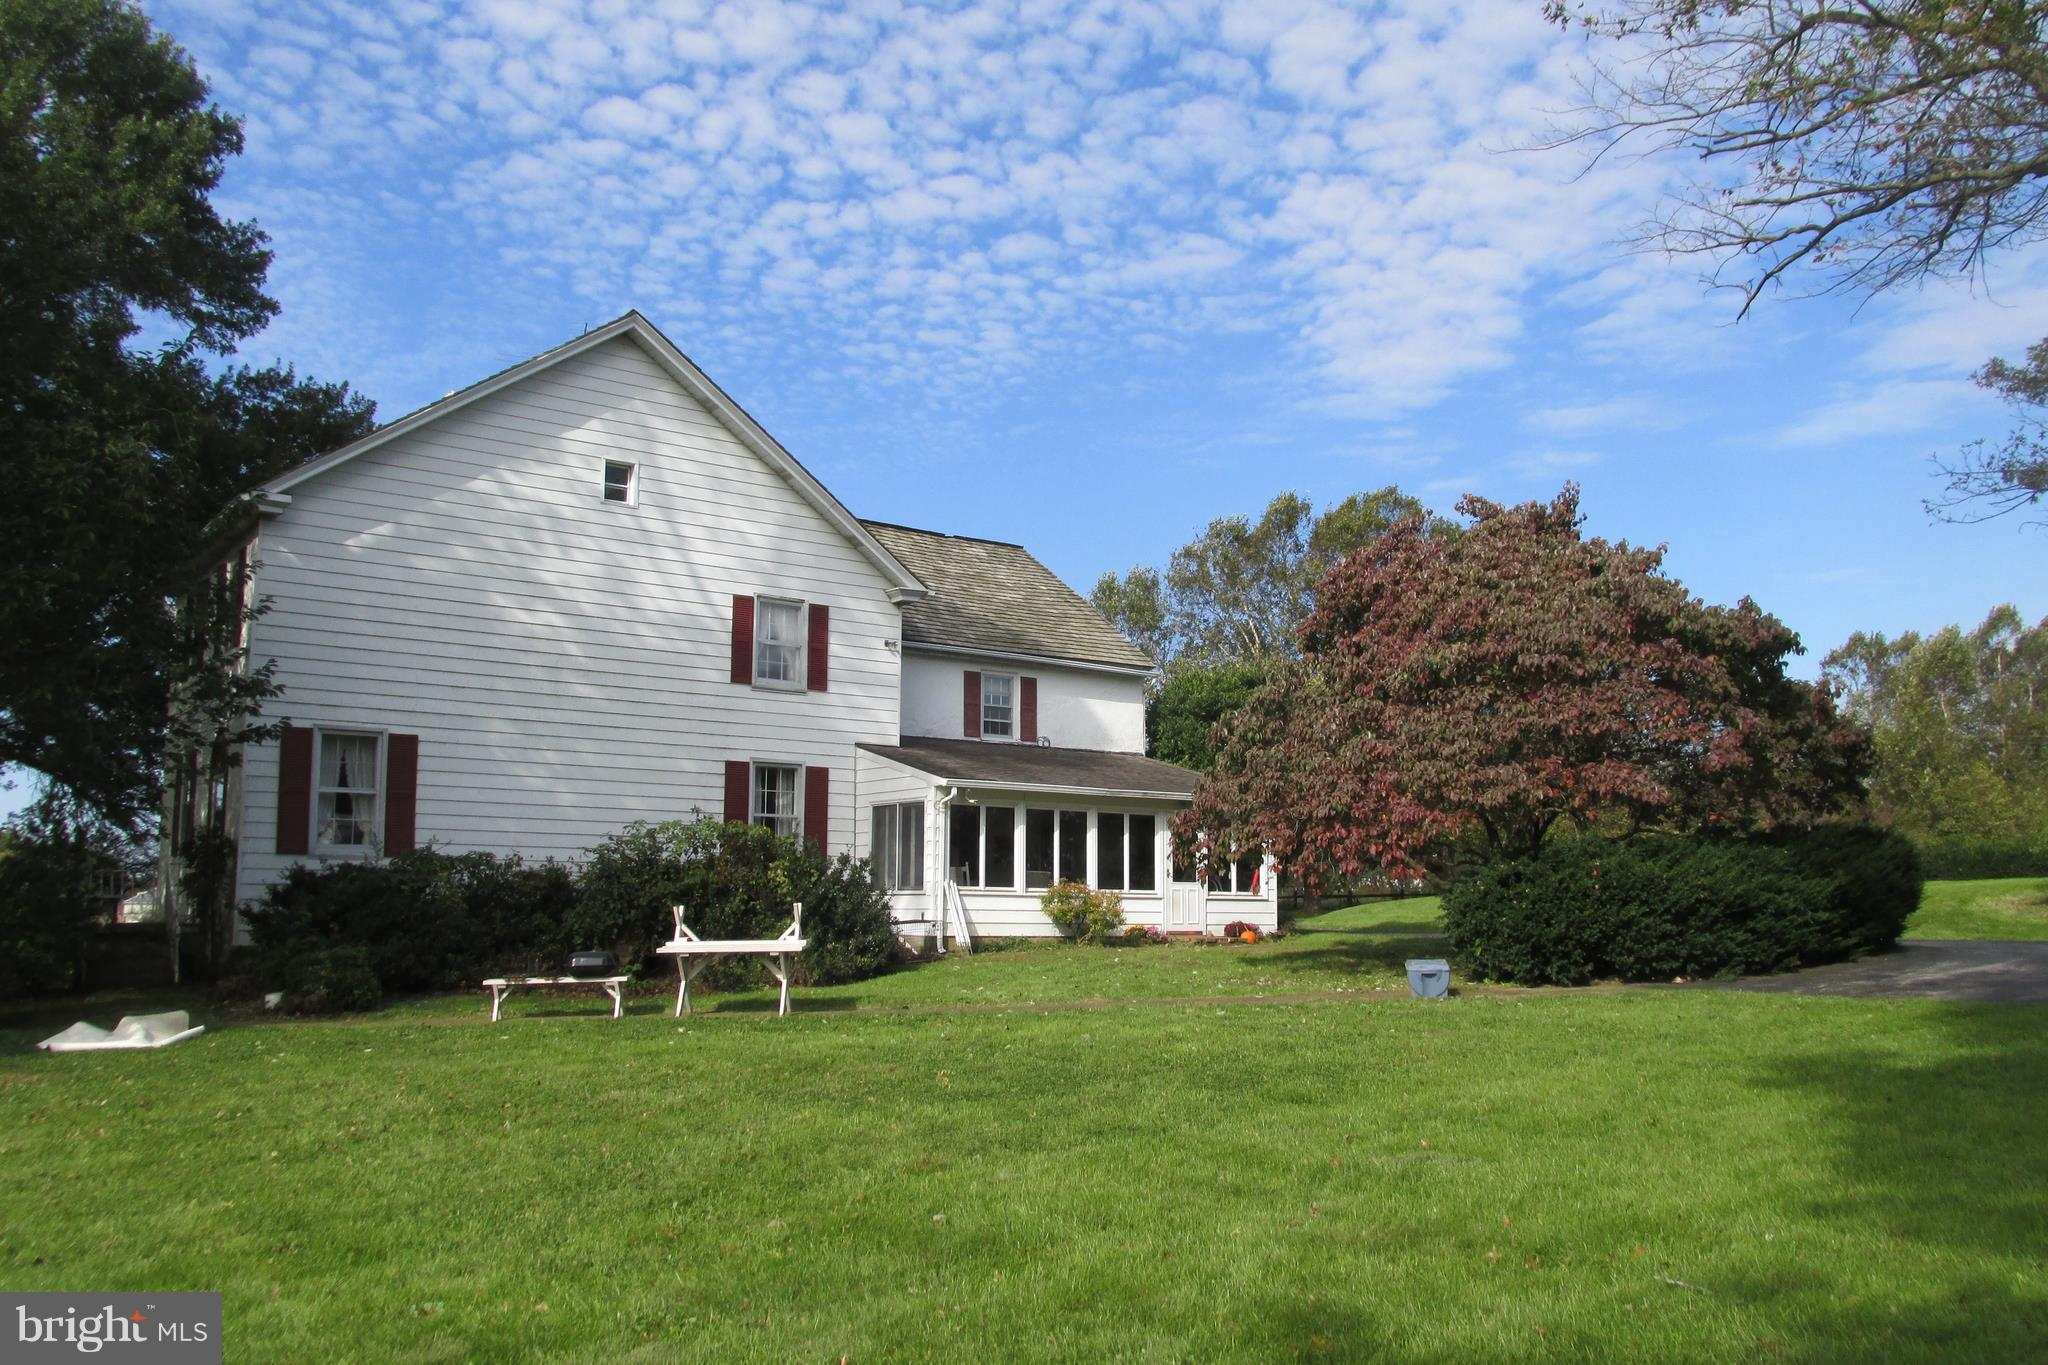 4000 LOWER VALLEY ROAD, PARKESBURG, PA 19365